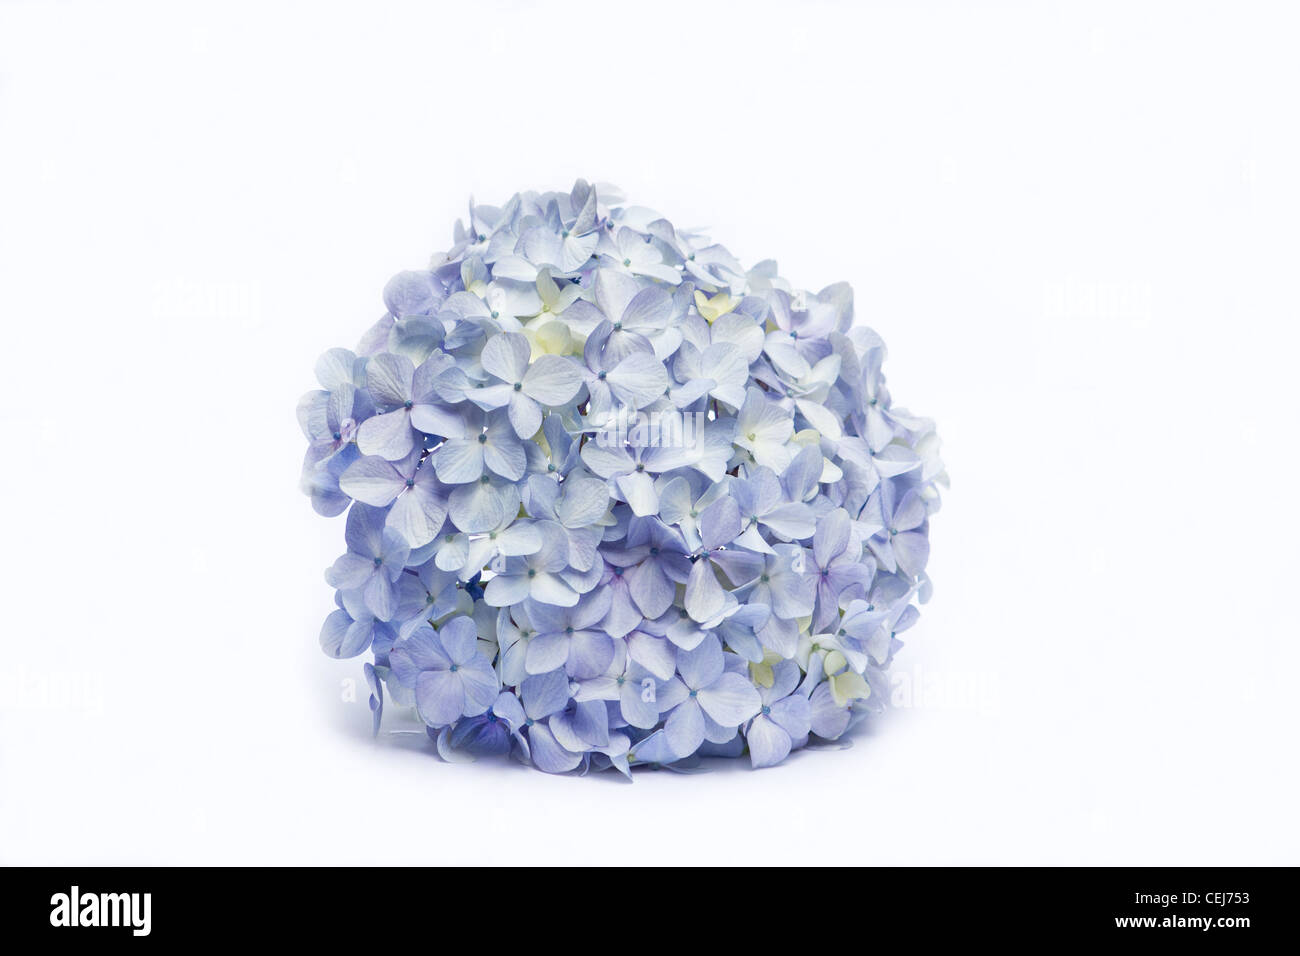 Blue hydrangeas on white background - Stock Image